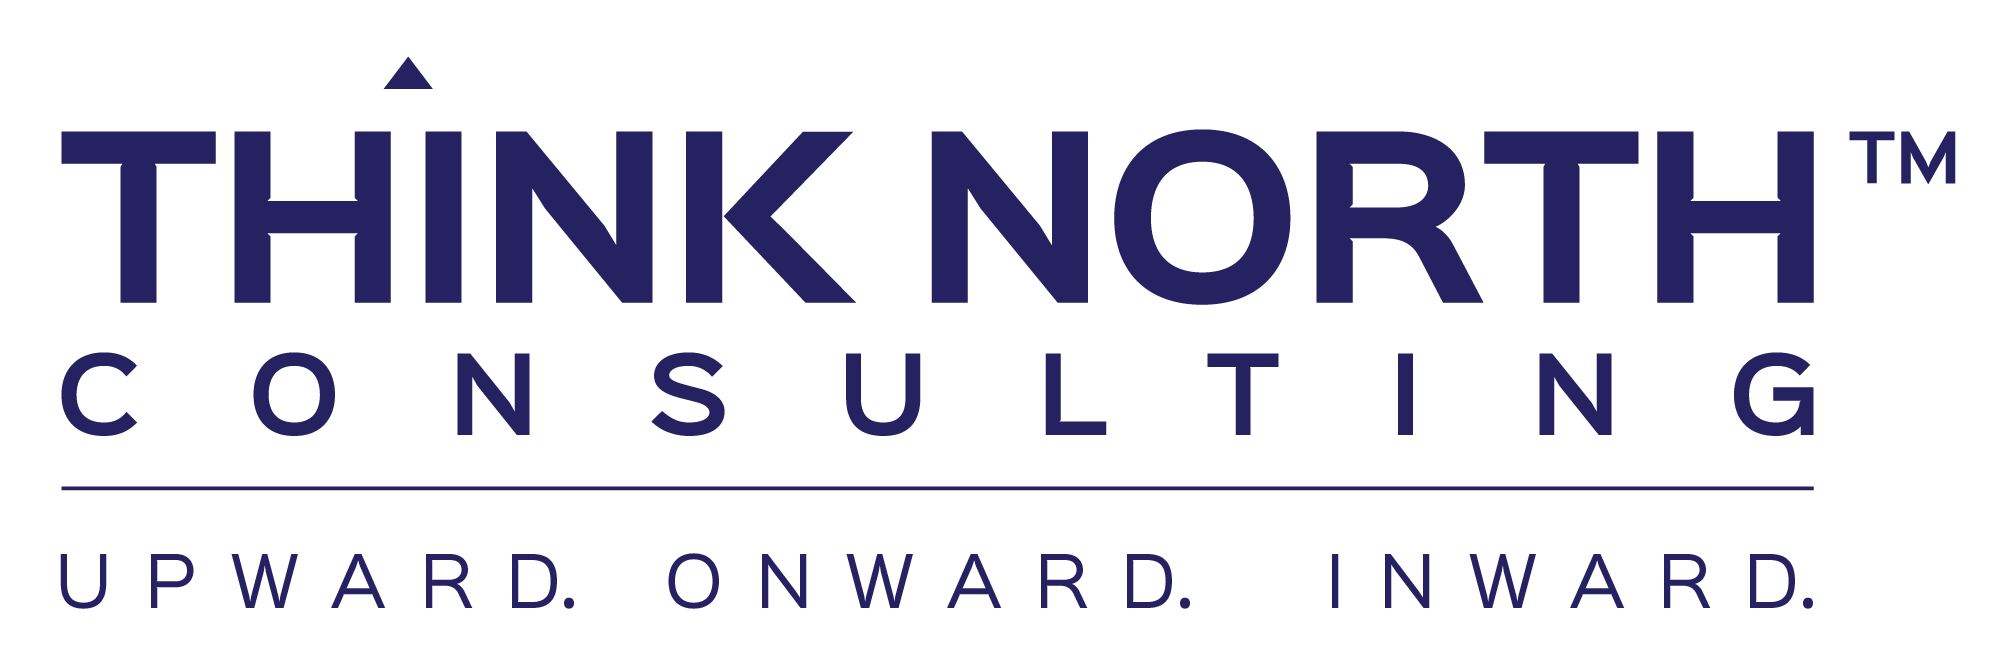 Think North Consulting